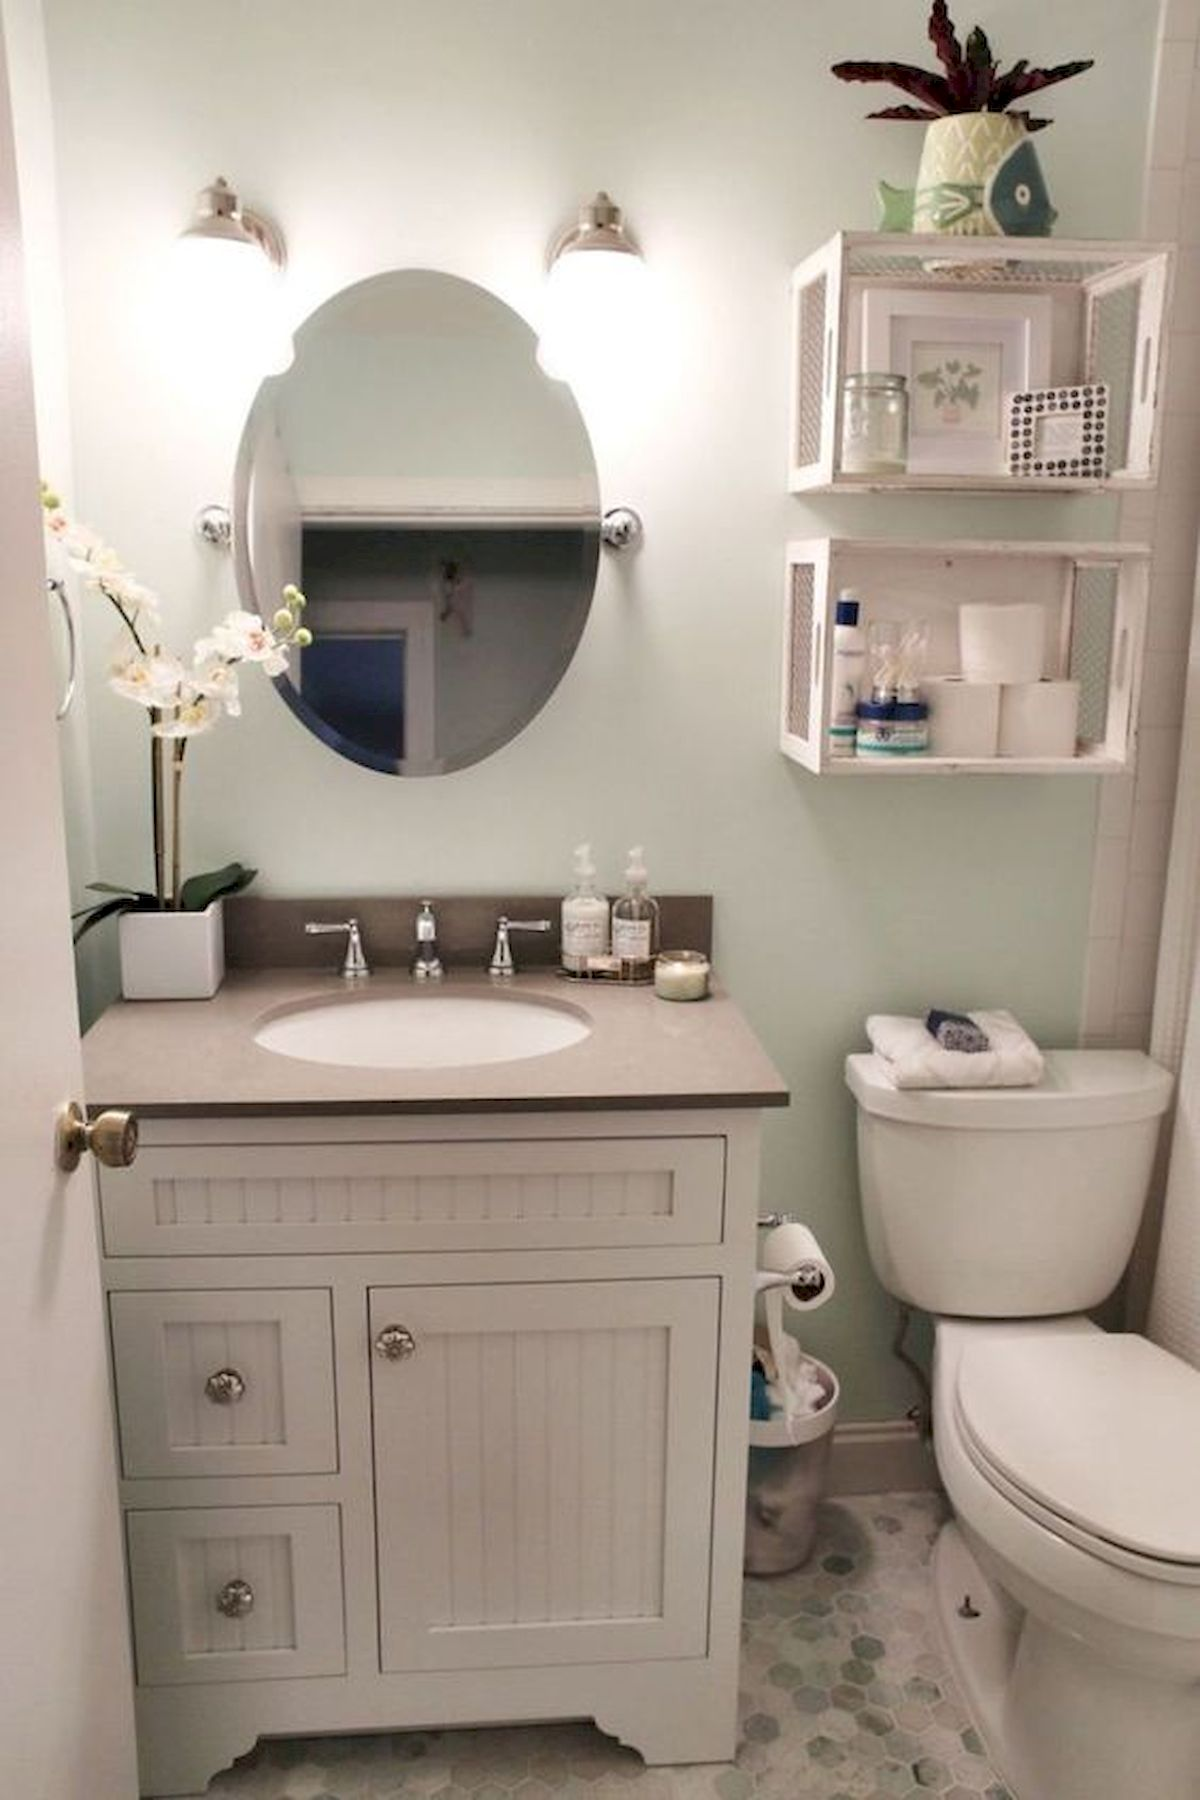 50 Best DIY Storage Design Ideas To Maximize Your Small Bathroom Space (12)